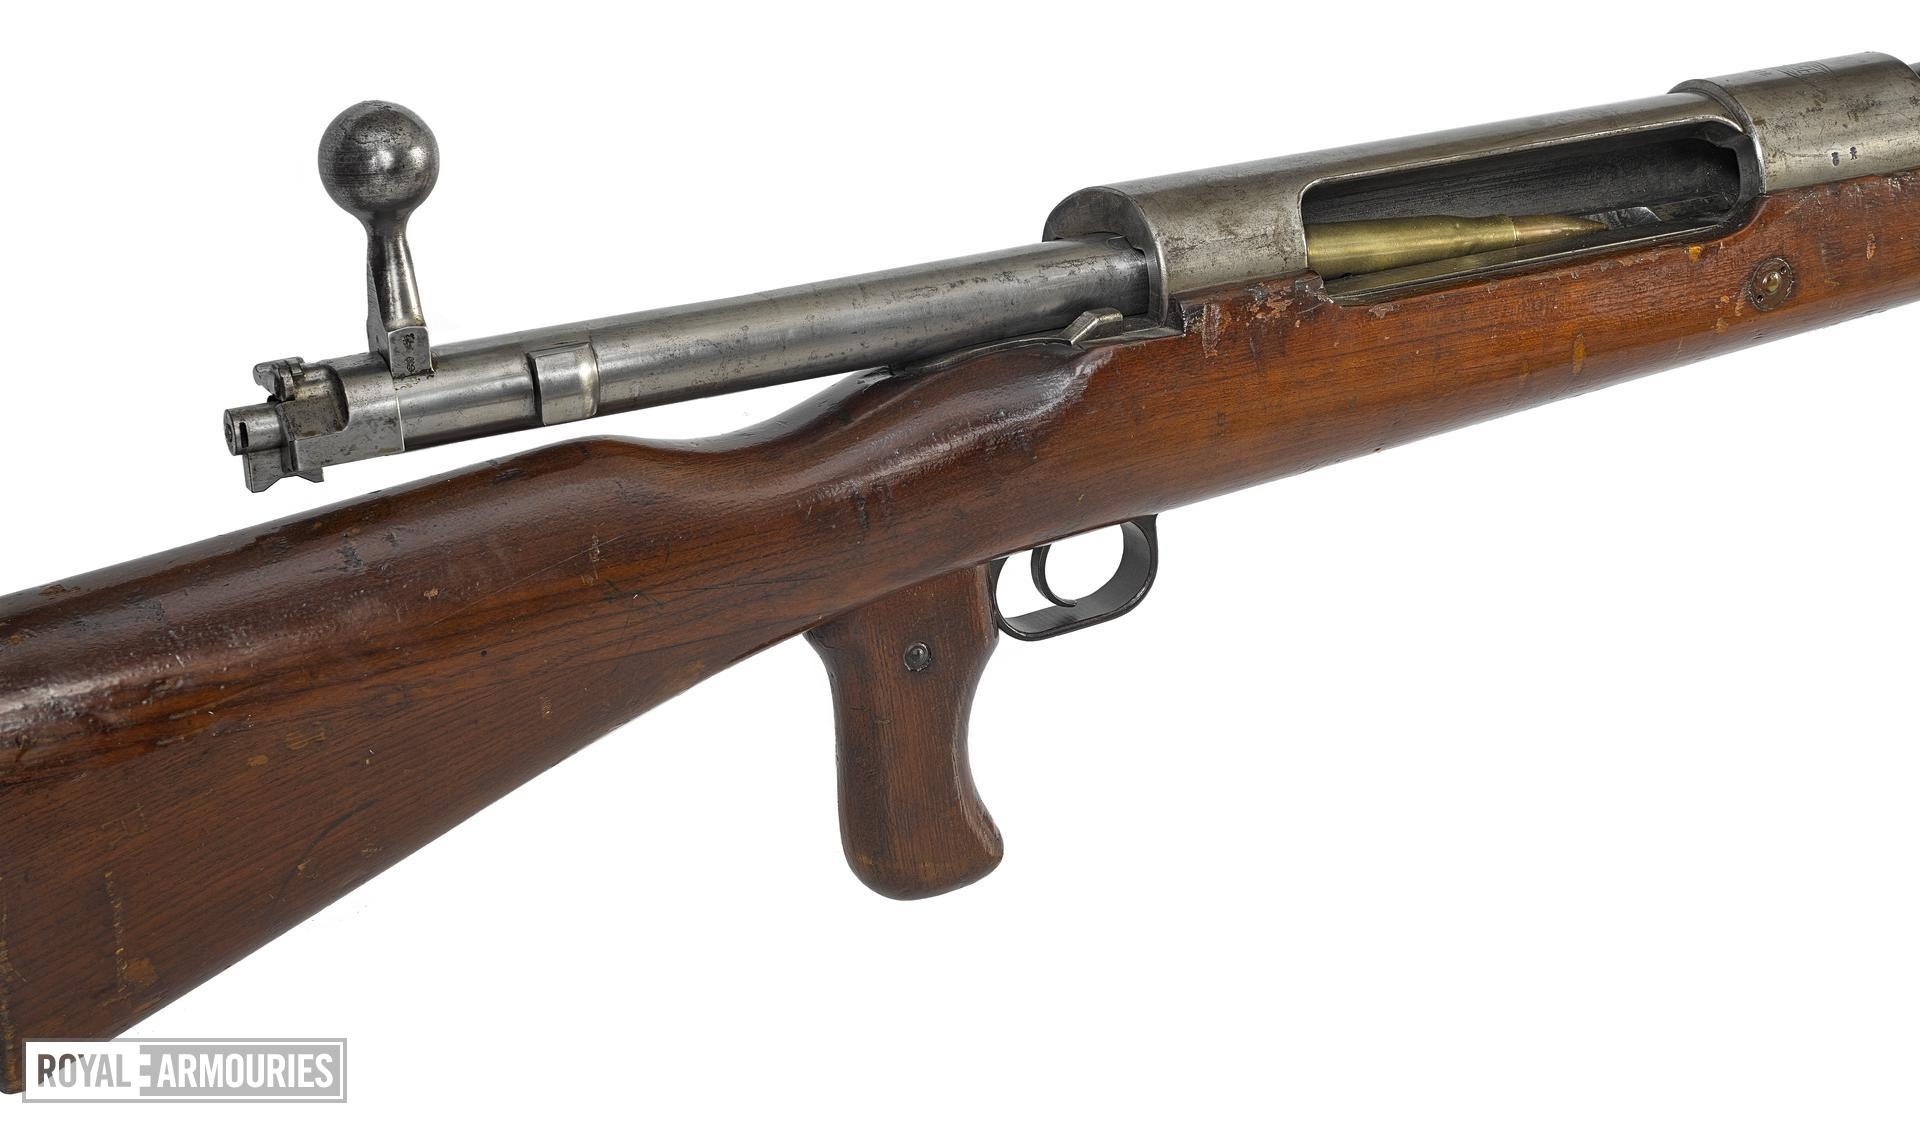 Mauser Model 1918 T (Tank) Gewehr  centrefire bolt action anti-tank rifle, German, about 1918. For anti-tank use.